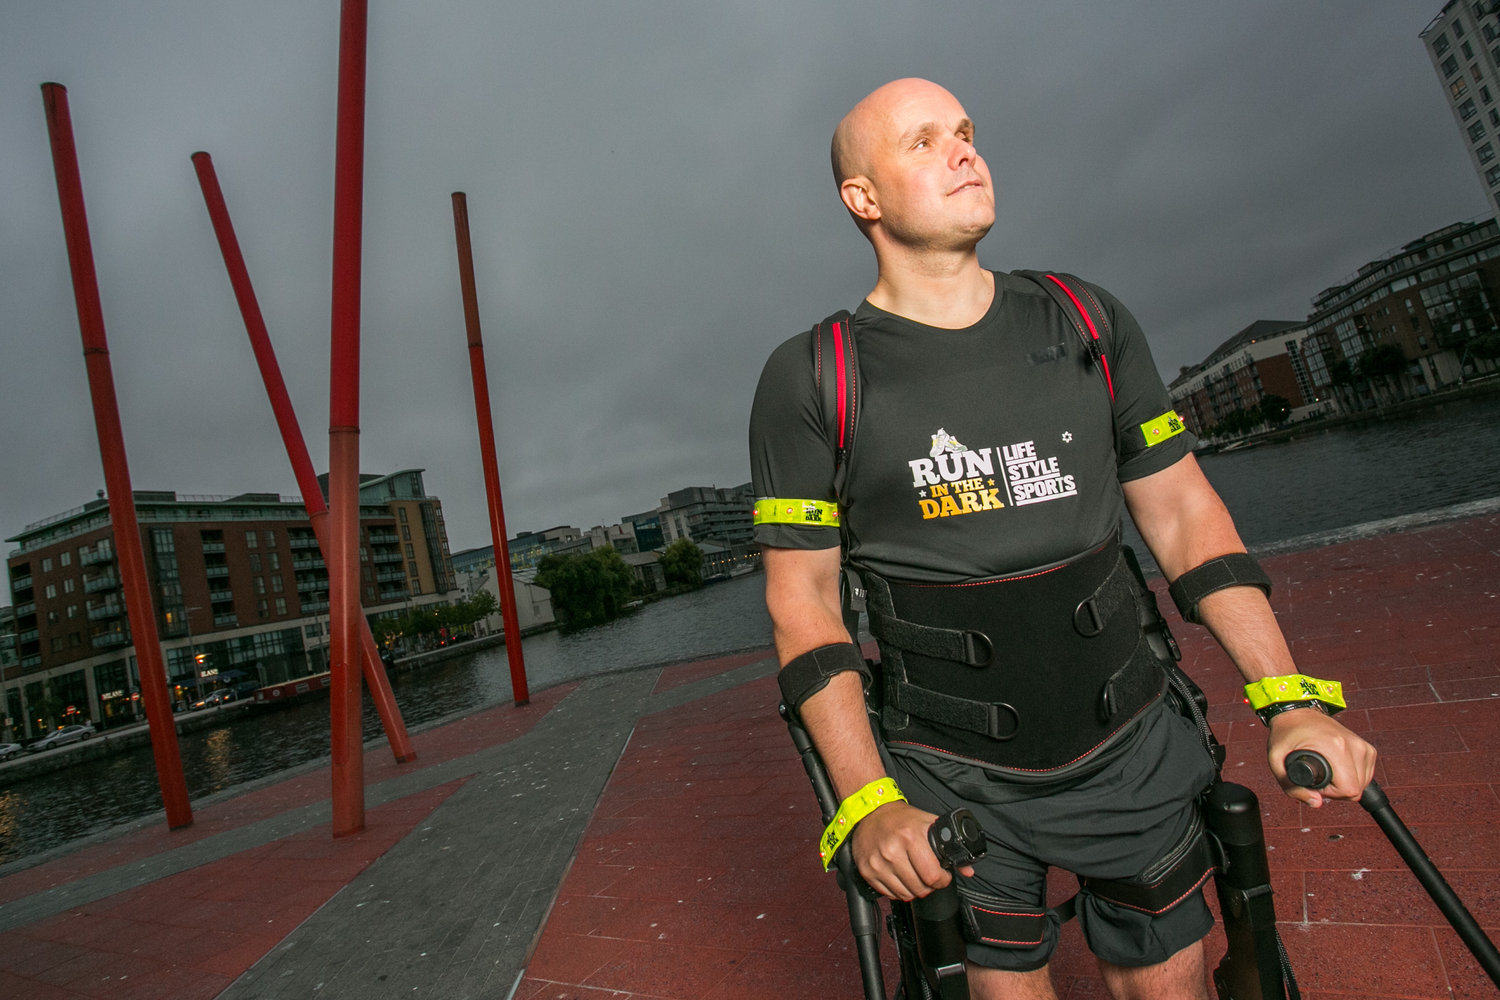 mark pollock Blind Man Sues Friends After Falling Out Of Their Window